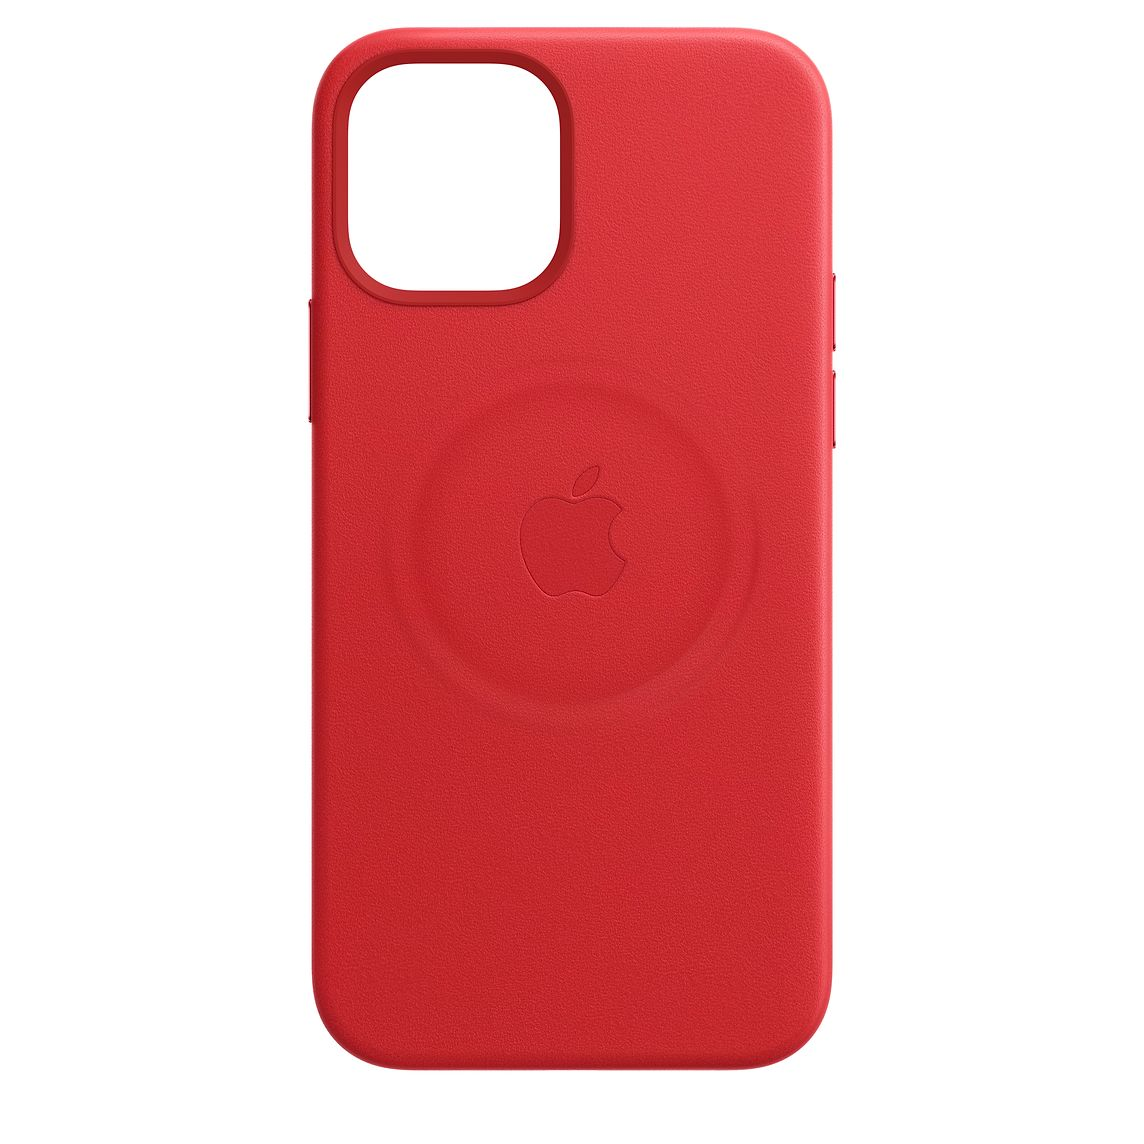 - iPhone 12 mini Leather Case with MagSafe / Rojo 6